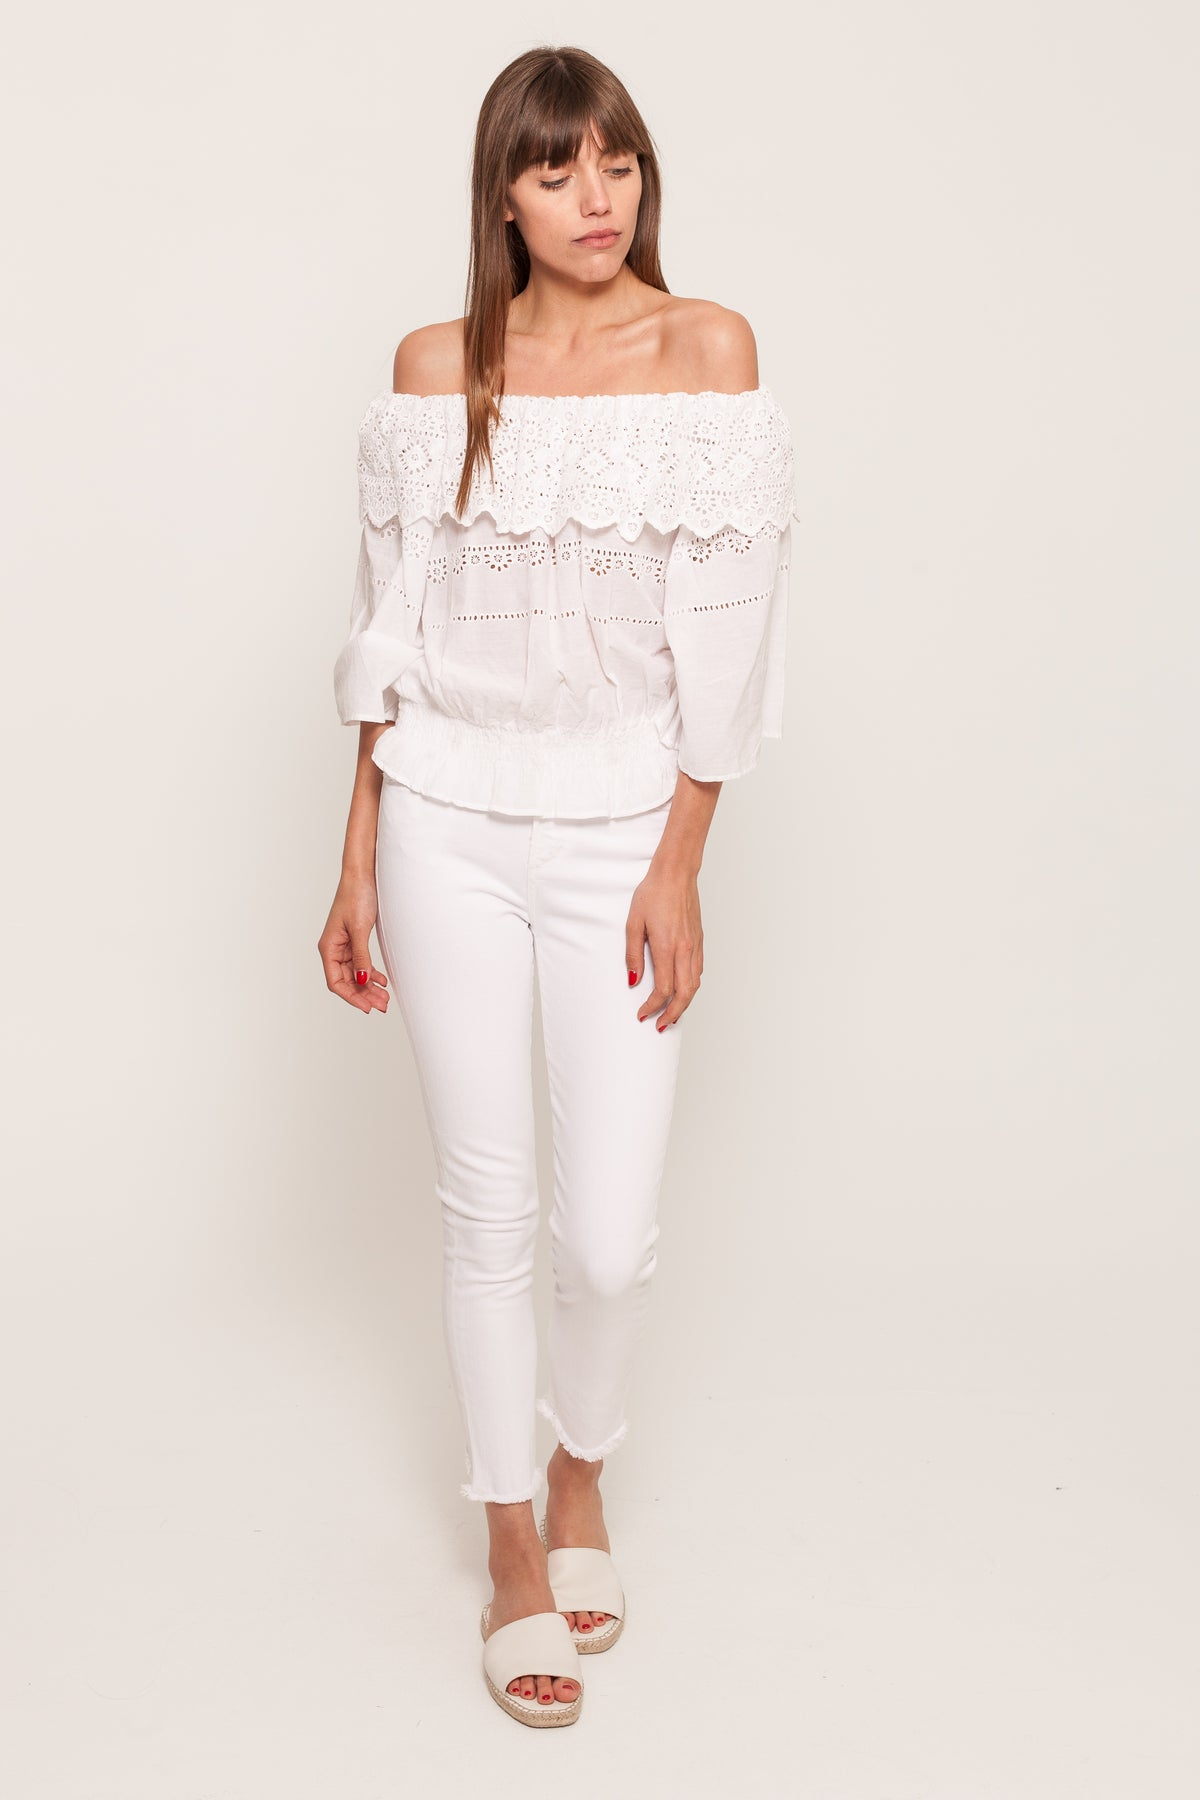 NE QUITTEZ PASRUFFLE LACE TOP22464